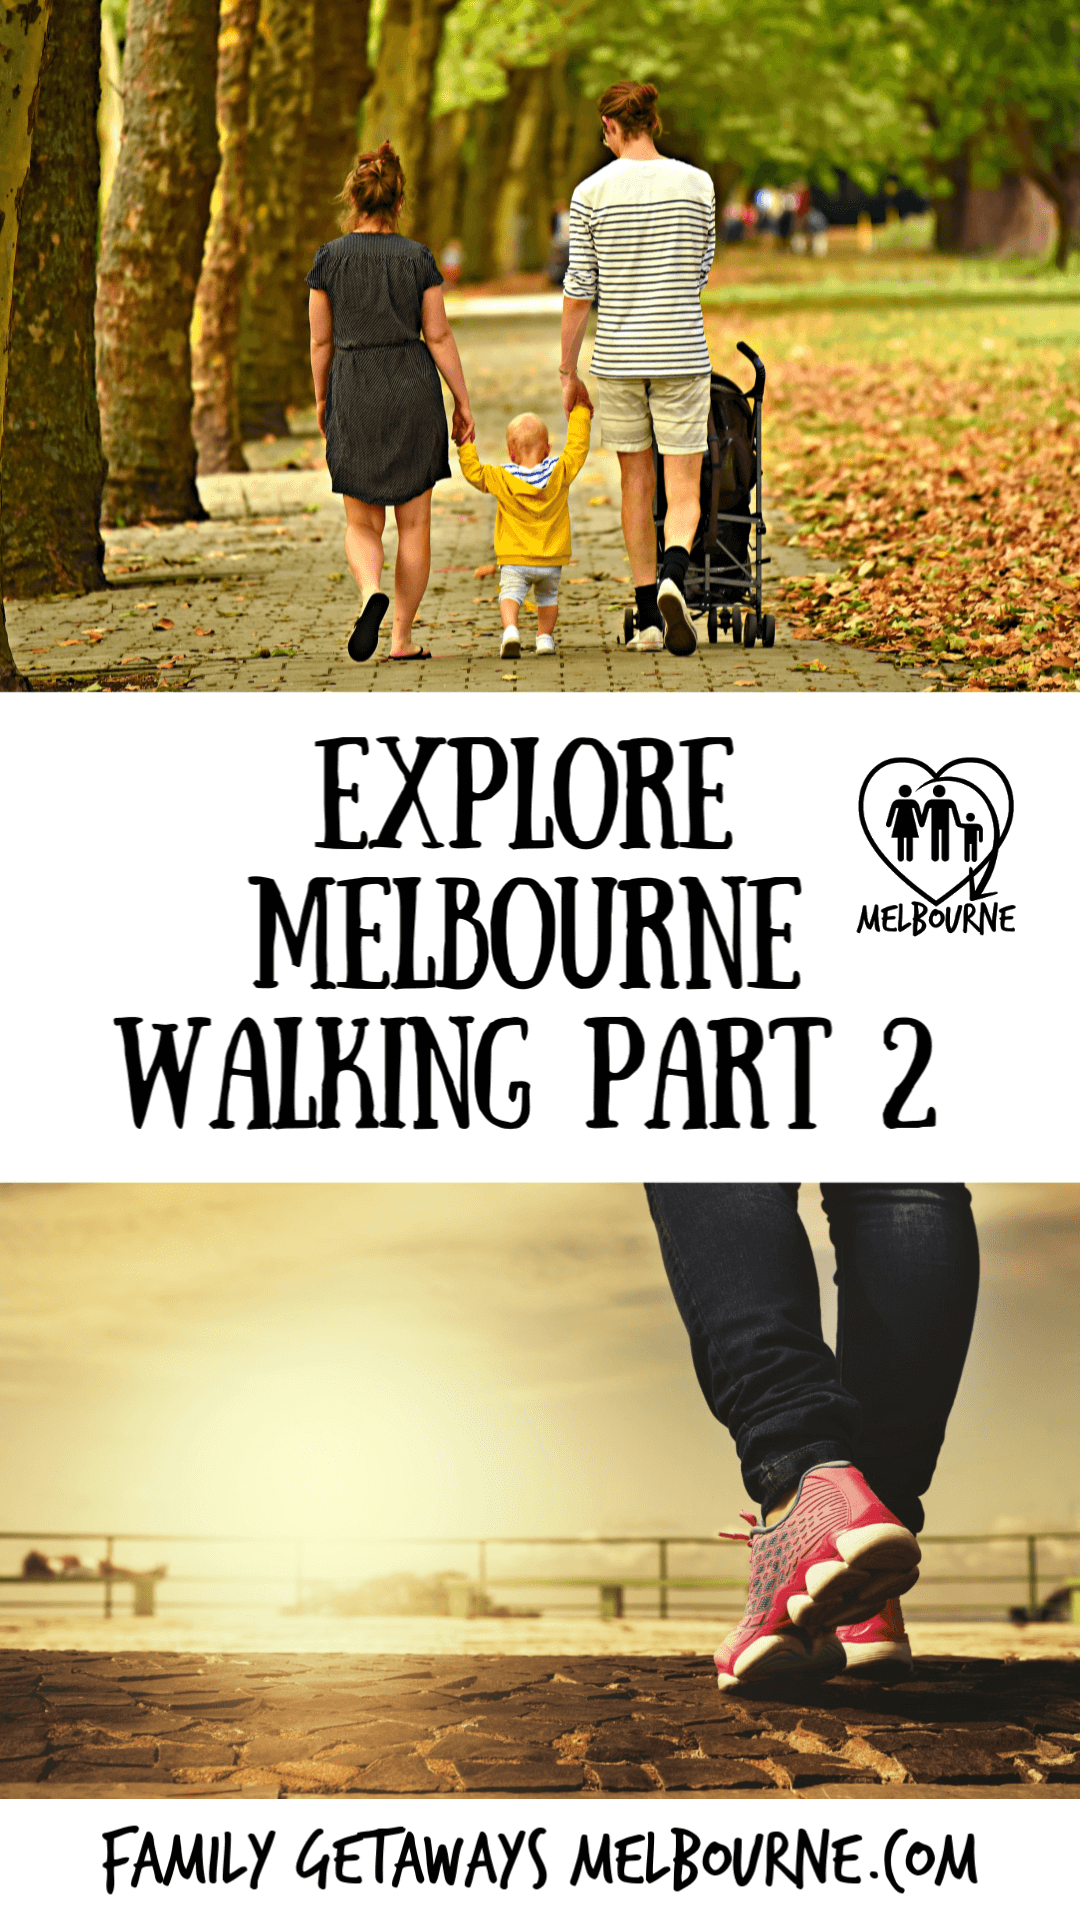 image to pin to pinterest for walking melbourne tours, part 2 of a 2 part section on exploring Melbourne, Australia